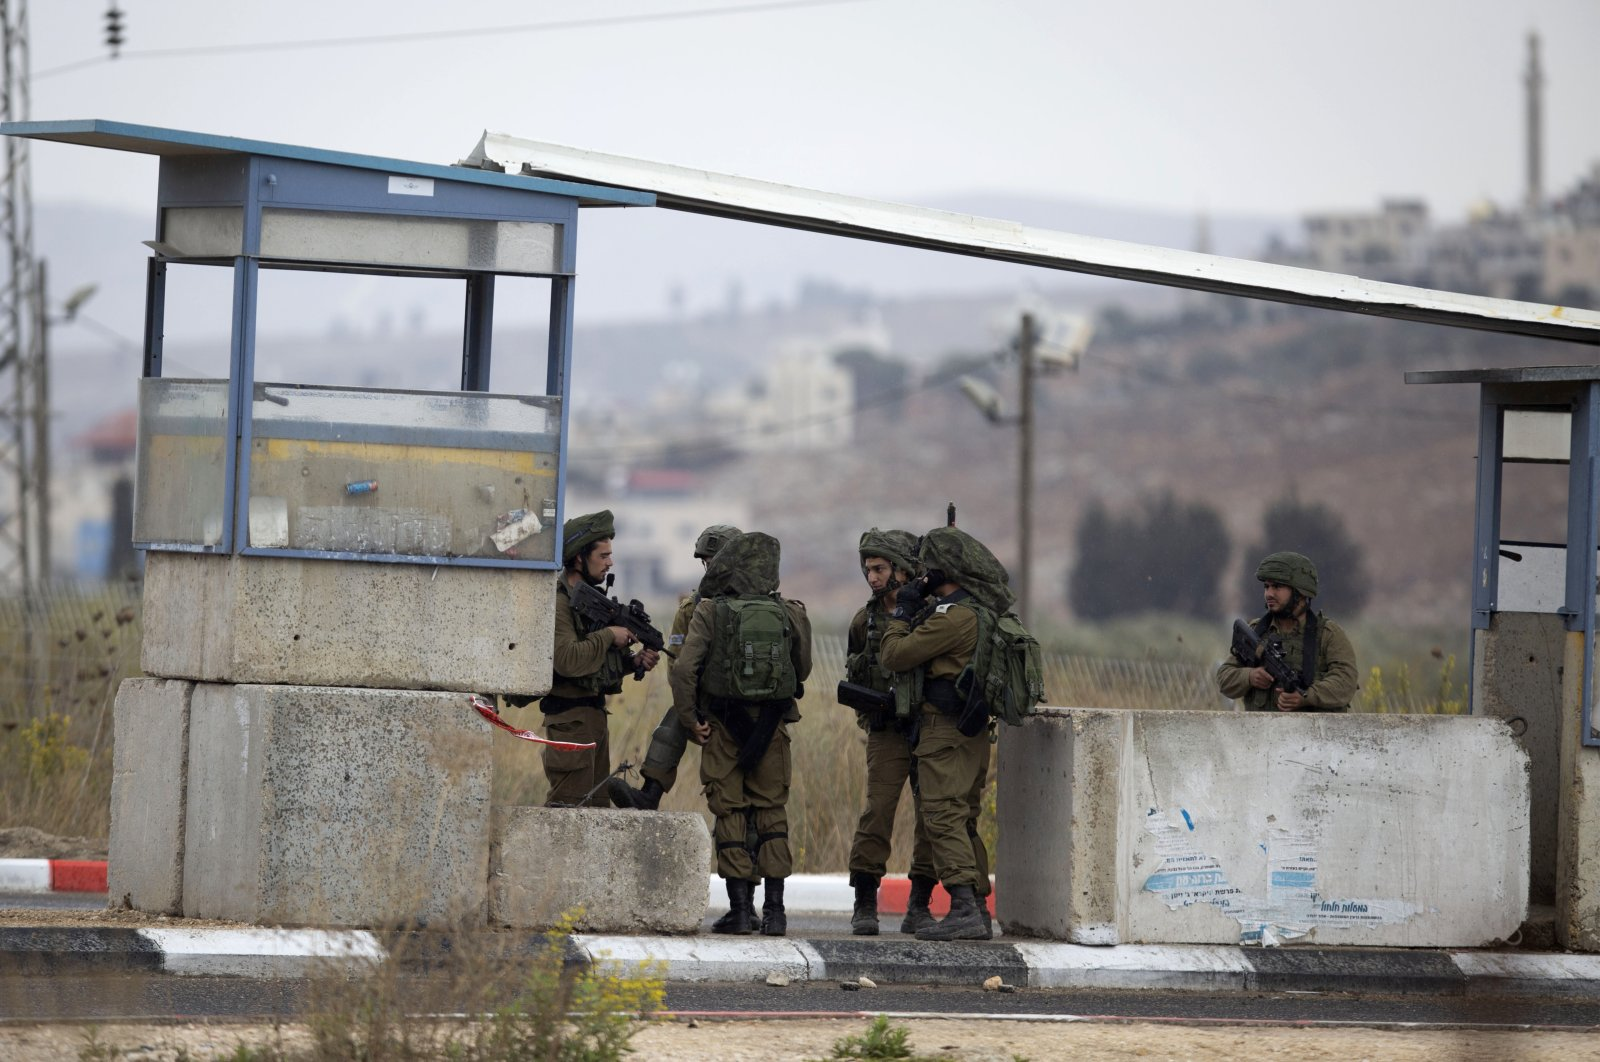 Israeli soldiers secure the area at the Huwara checkpoint south of the West Bank city of Nablus, Nov. 4, 2020. (AP Photo)